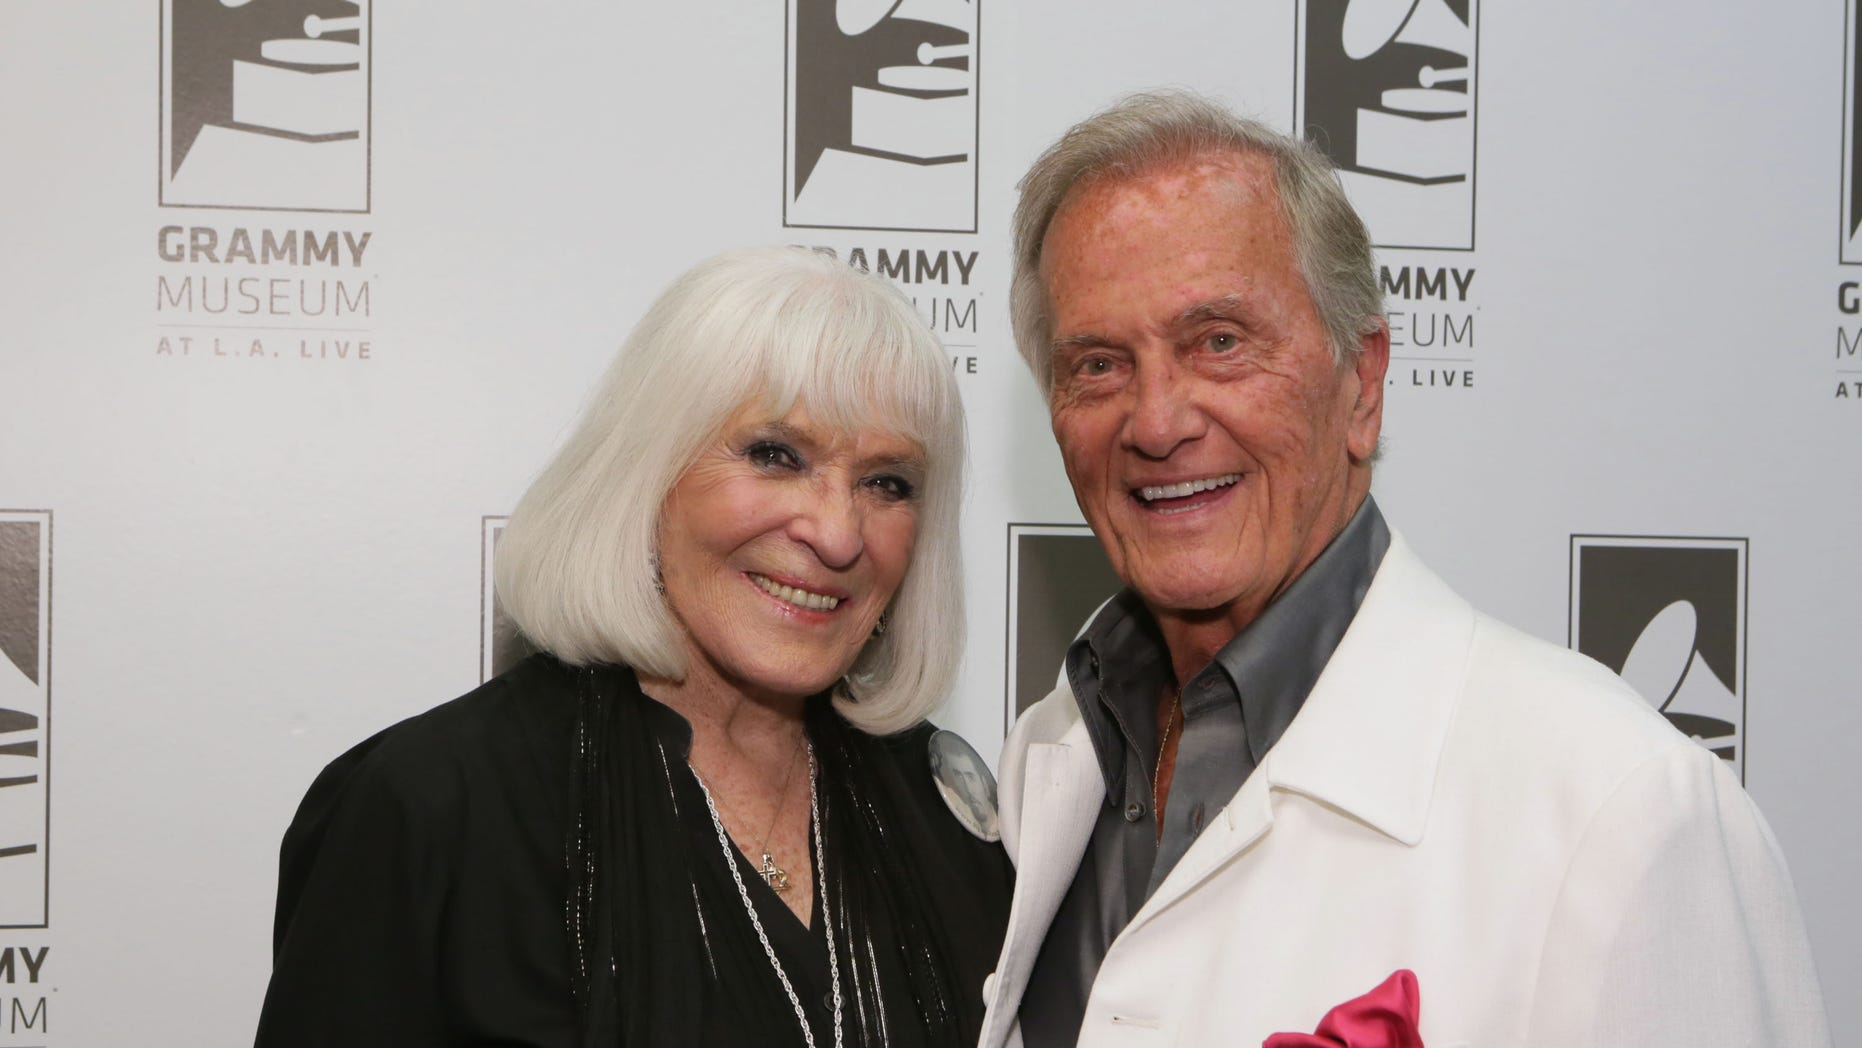 Shirley Boone, who was married to celebrated singer and actor Pat Boone, reportedly died Friday at age 84.